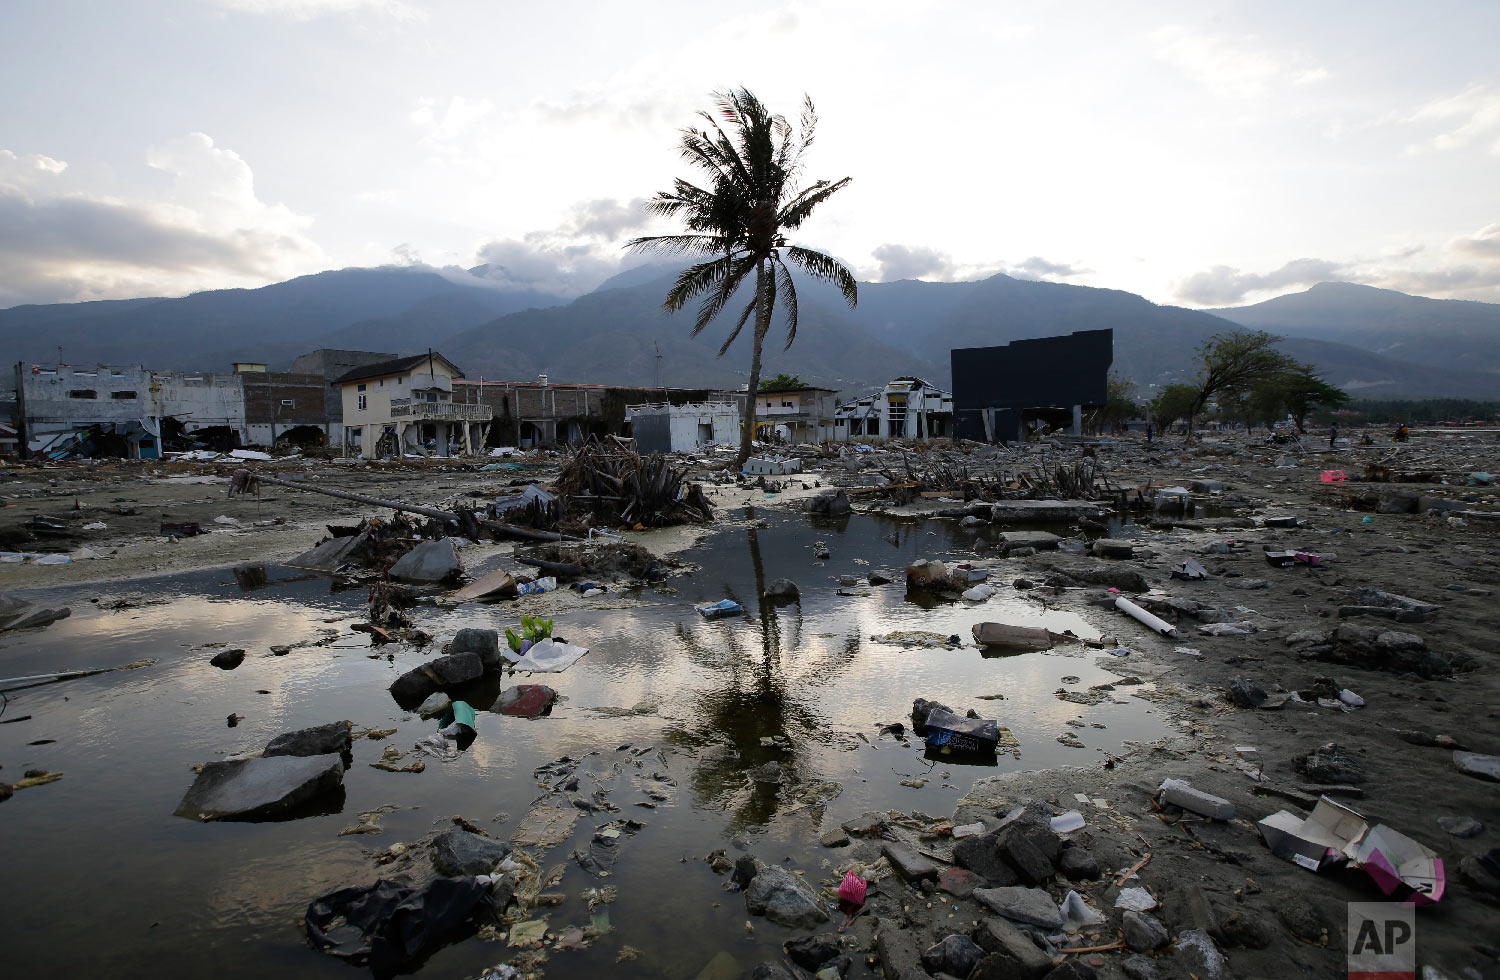 A lone tree stands in the debris from structures that were wiped out after a massive earthquake and tsunami hit Palu, Central Sulawesi, Indonesia Thursday, Oct. 4, 2018. (AP Photo/Aaron Favila)